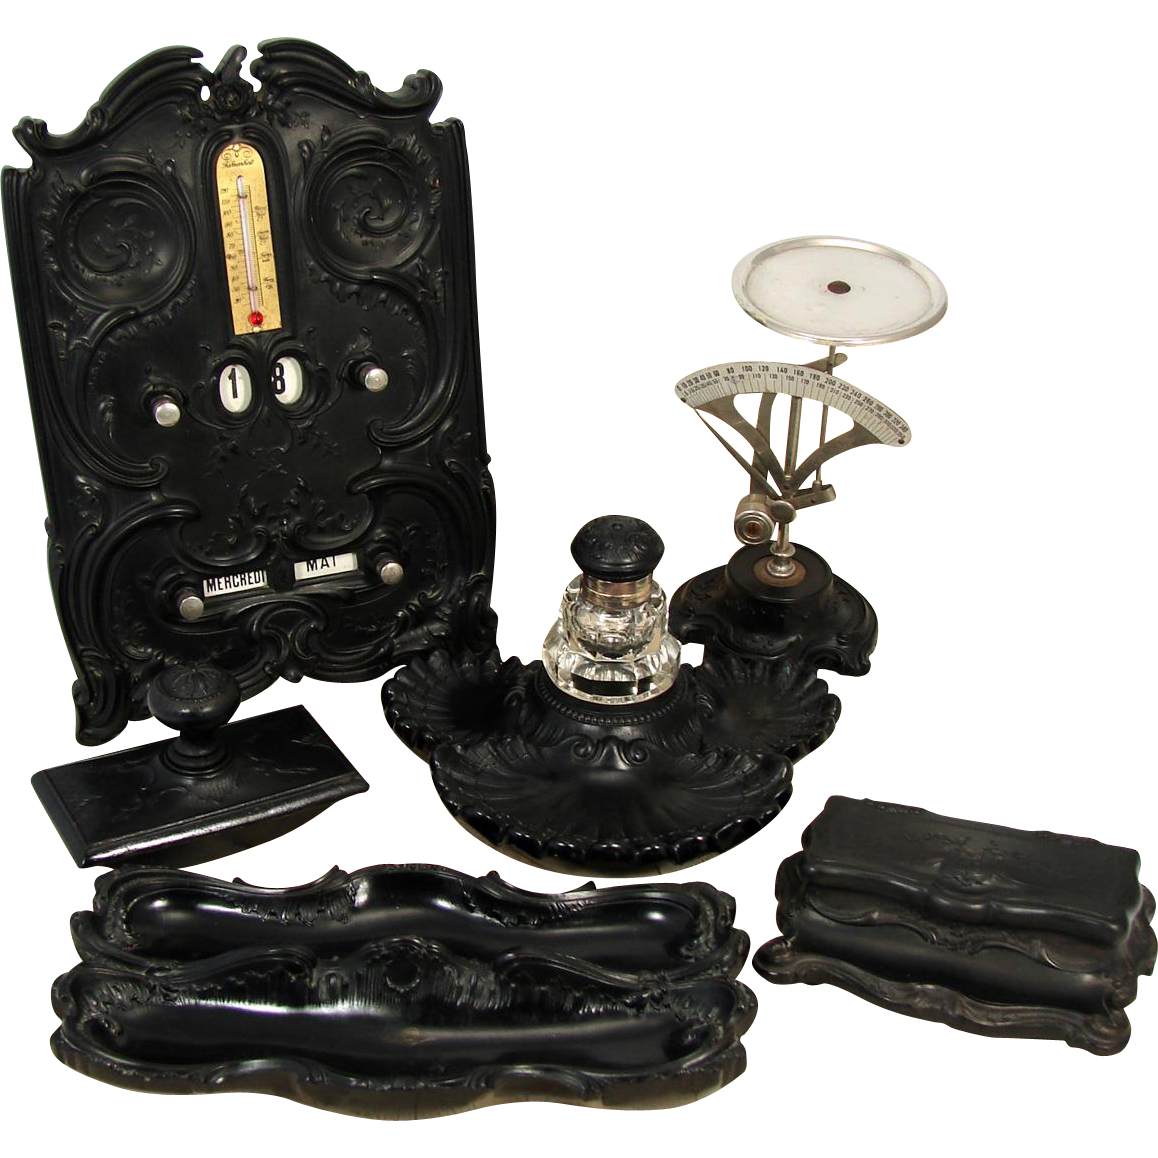 RARE 6pc Antique Victorian Era Gutta Percha Desk Set: Perpetual Calendar, Inkwell, Stamps Box, Scale +